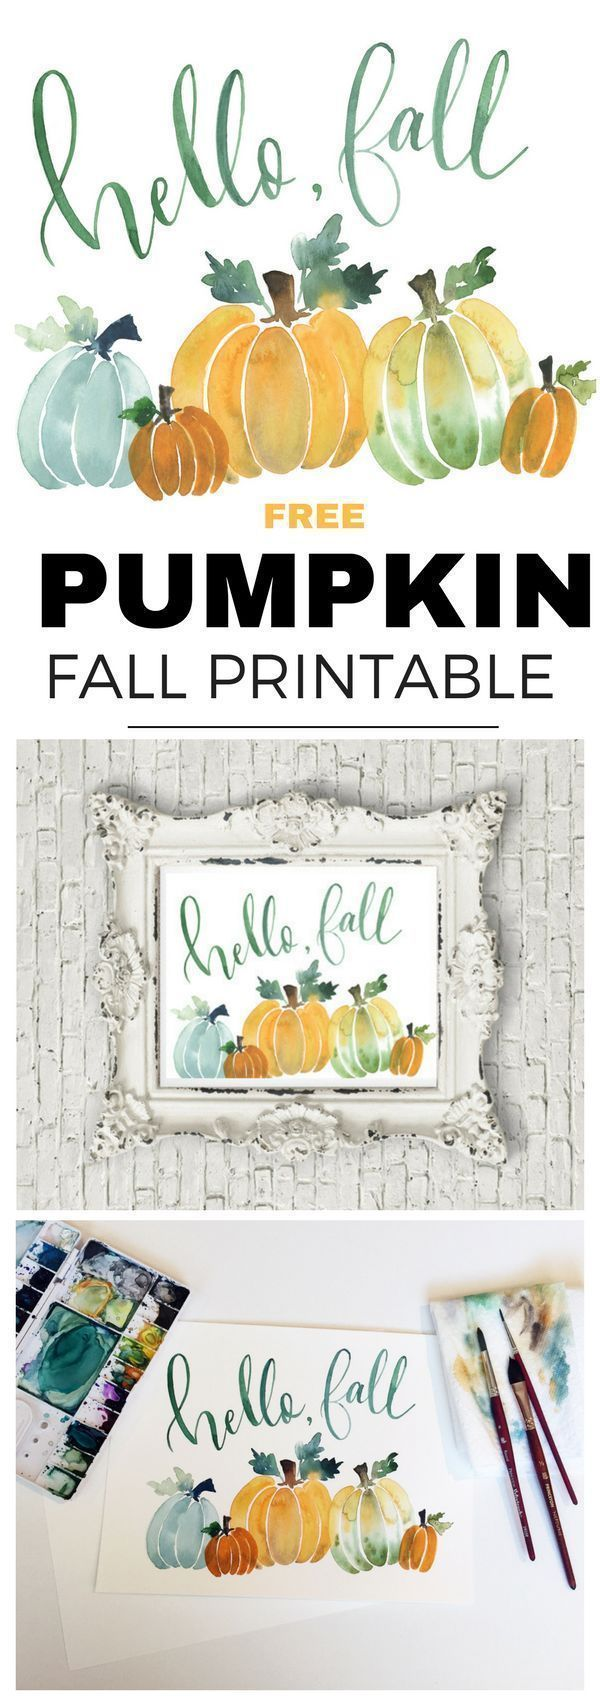 Watercolor Fall Pumpkin Printable #hellofall